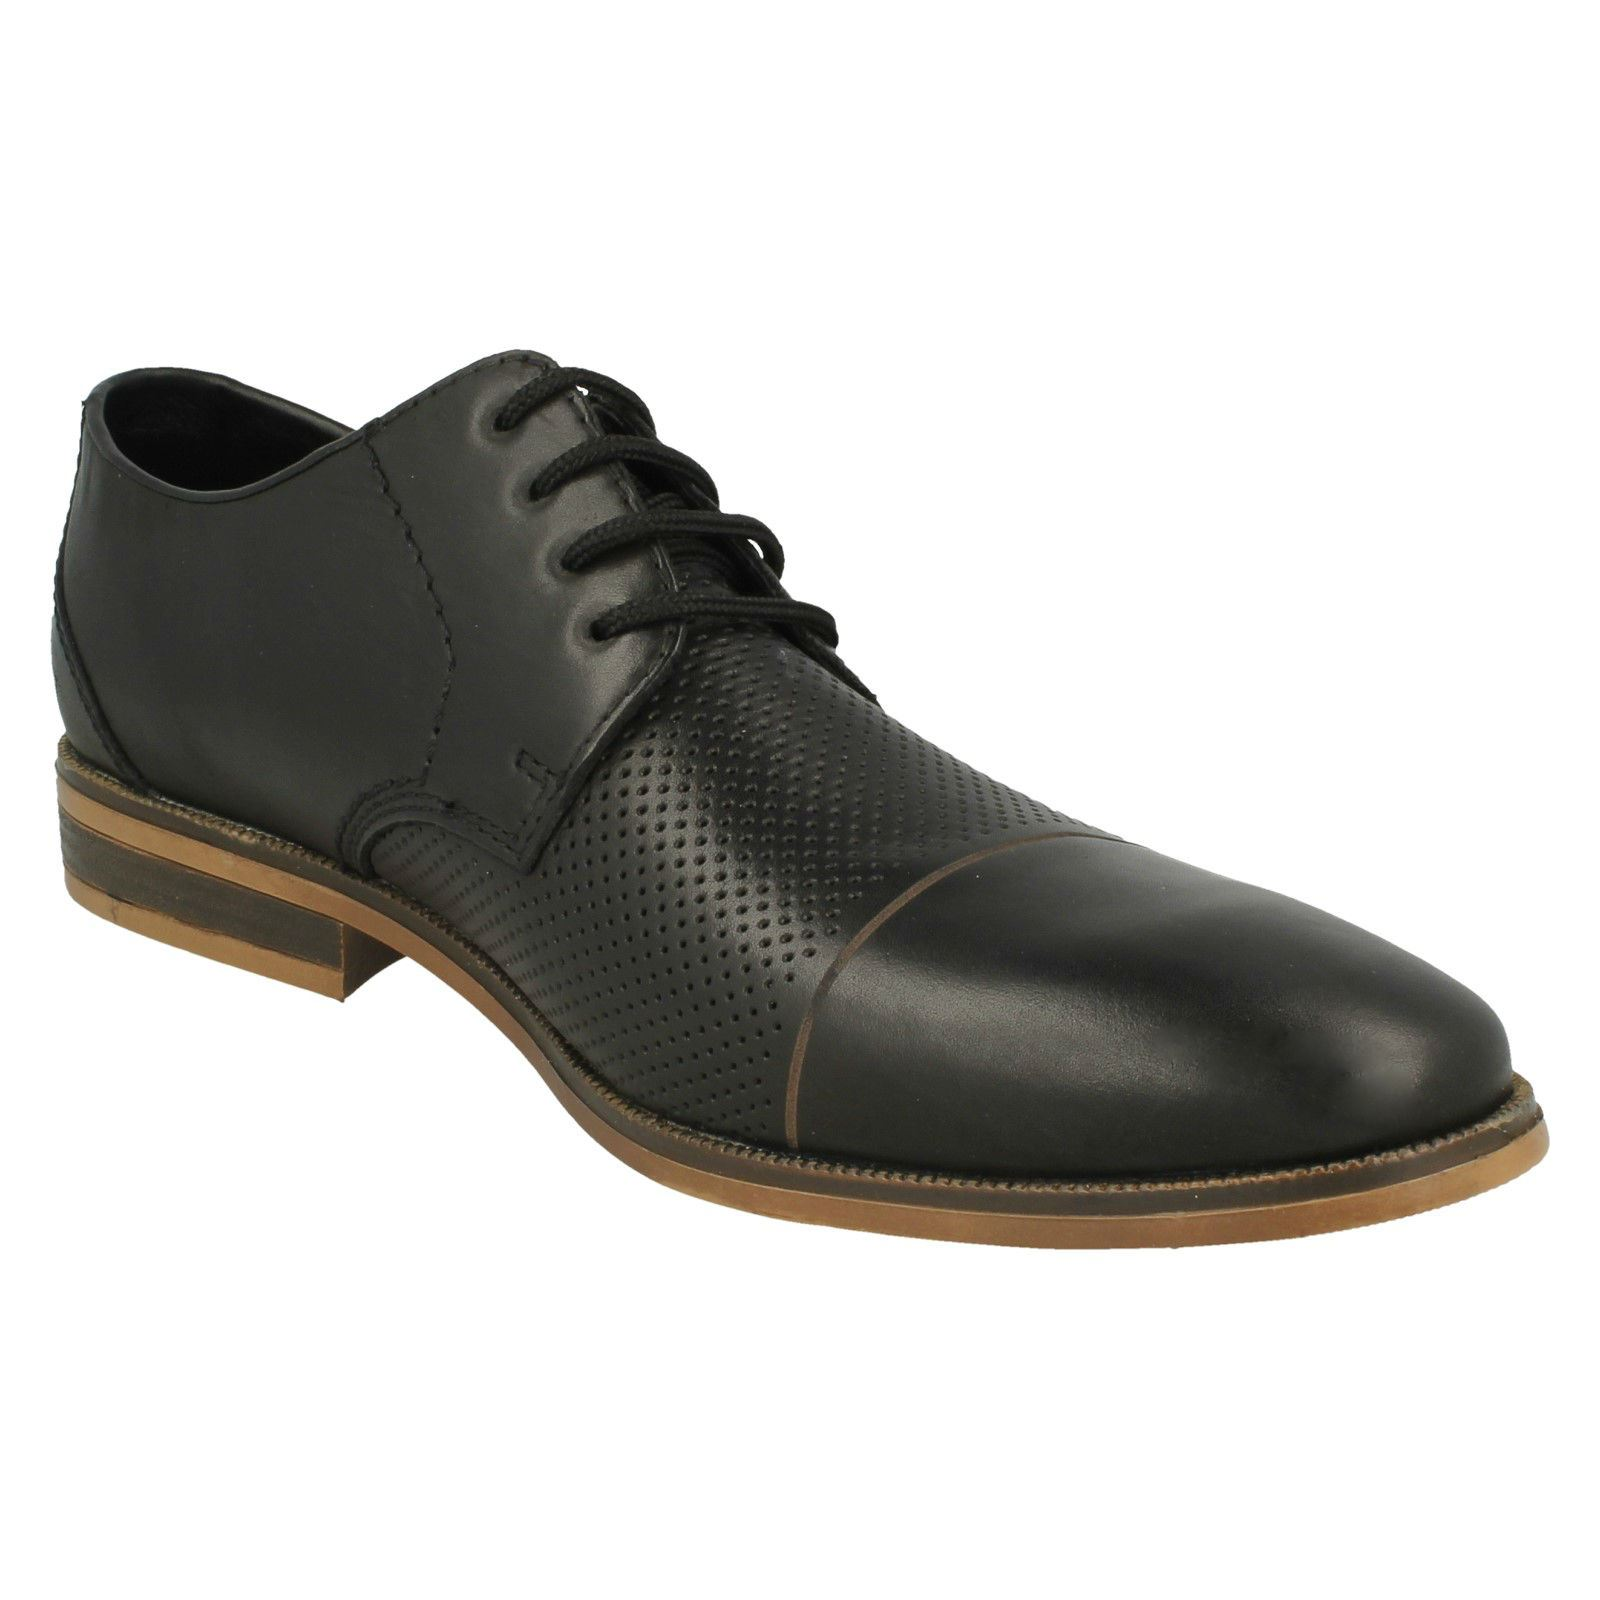 Herrenschuhe Mens Rieker 11615 Black Leather Lace Up Shoes